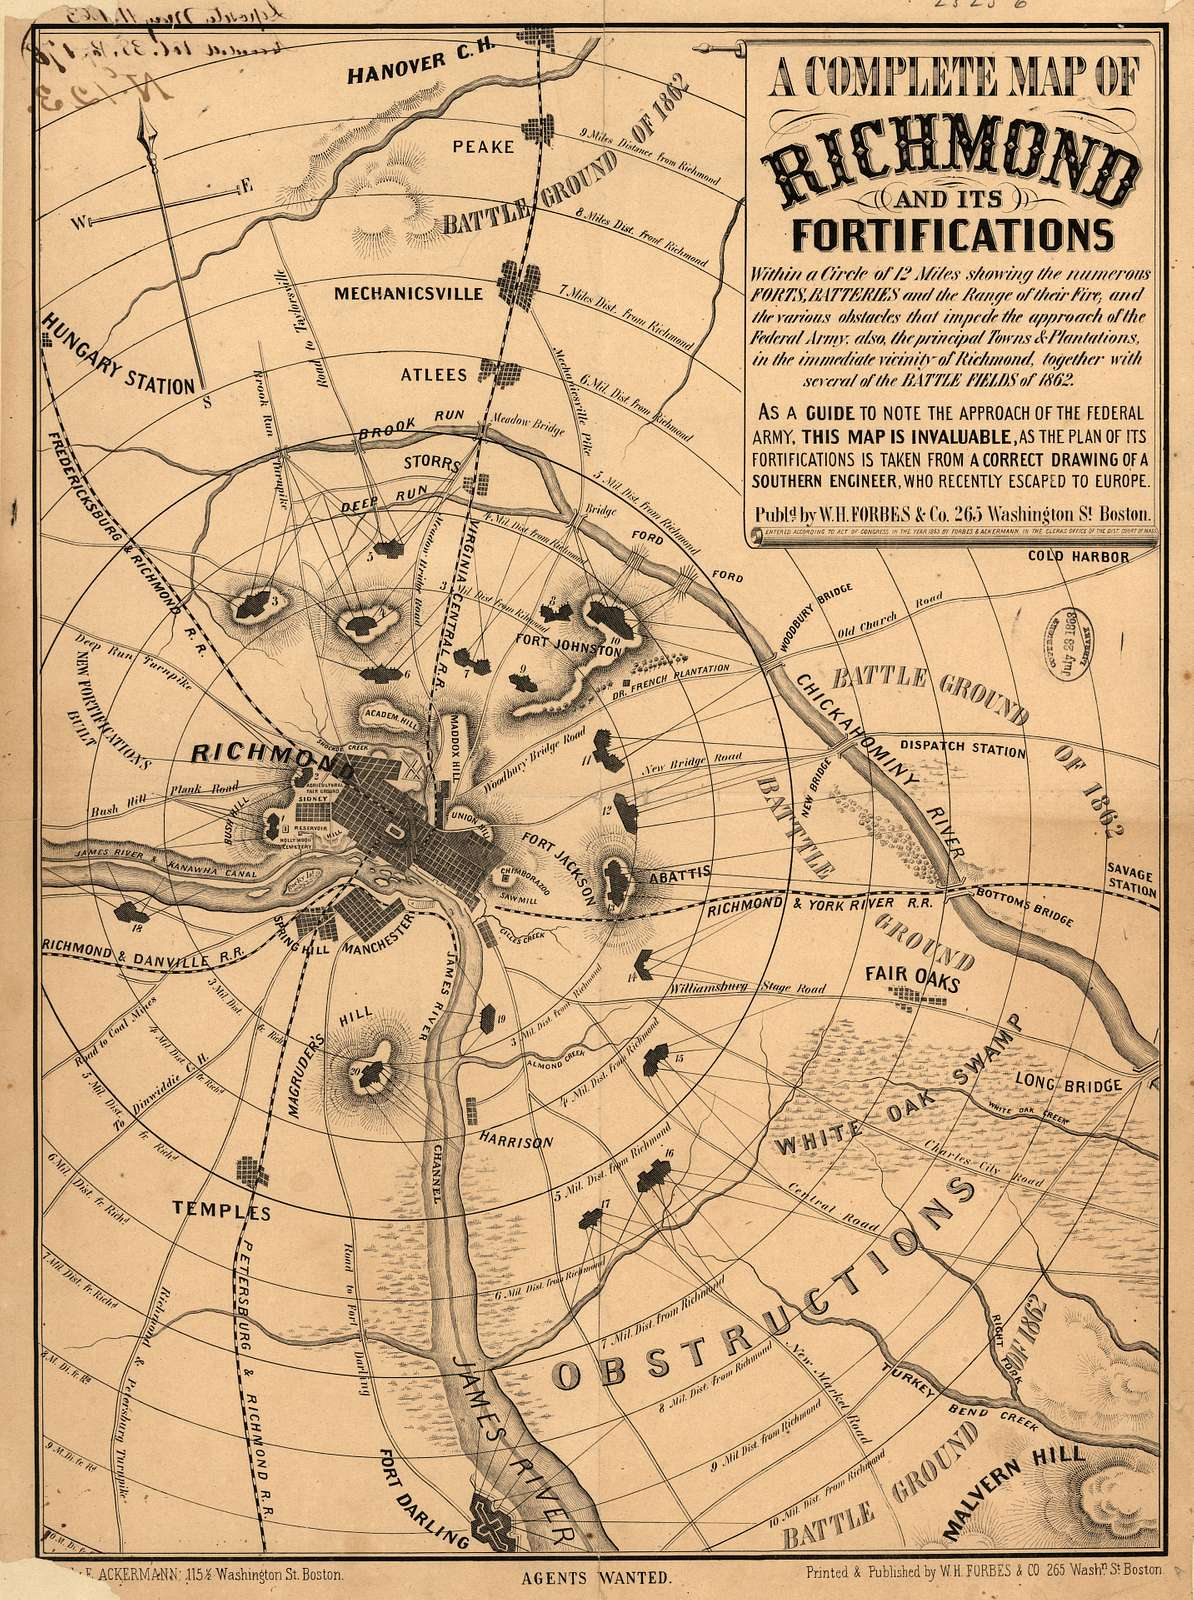 A complete map of Richmond and its fortifications within a circle of 12 miles showing the numerous forts, batteries and the range of their fire, and the various obstacles that impede the approach of the Federal army, also, the principal towns & plantations, in the immediate vicinity of Richmond, together with several of the battle fields of 1862.